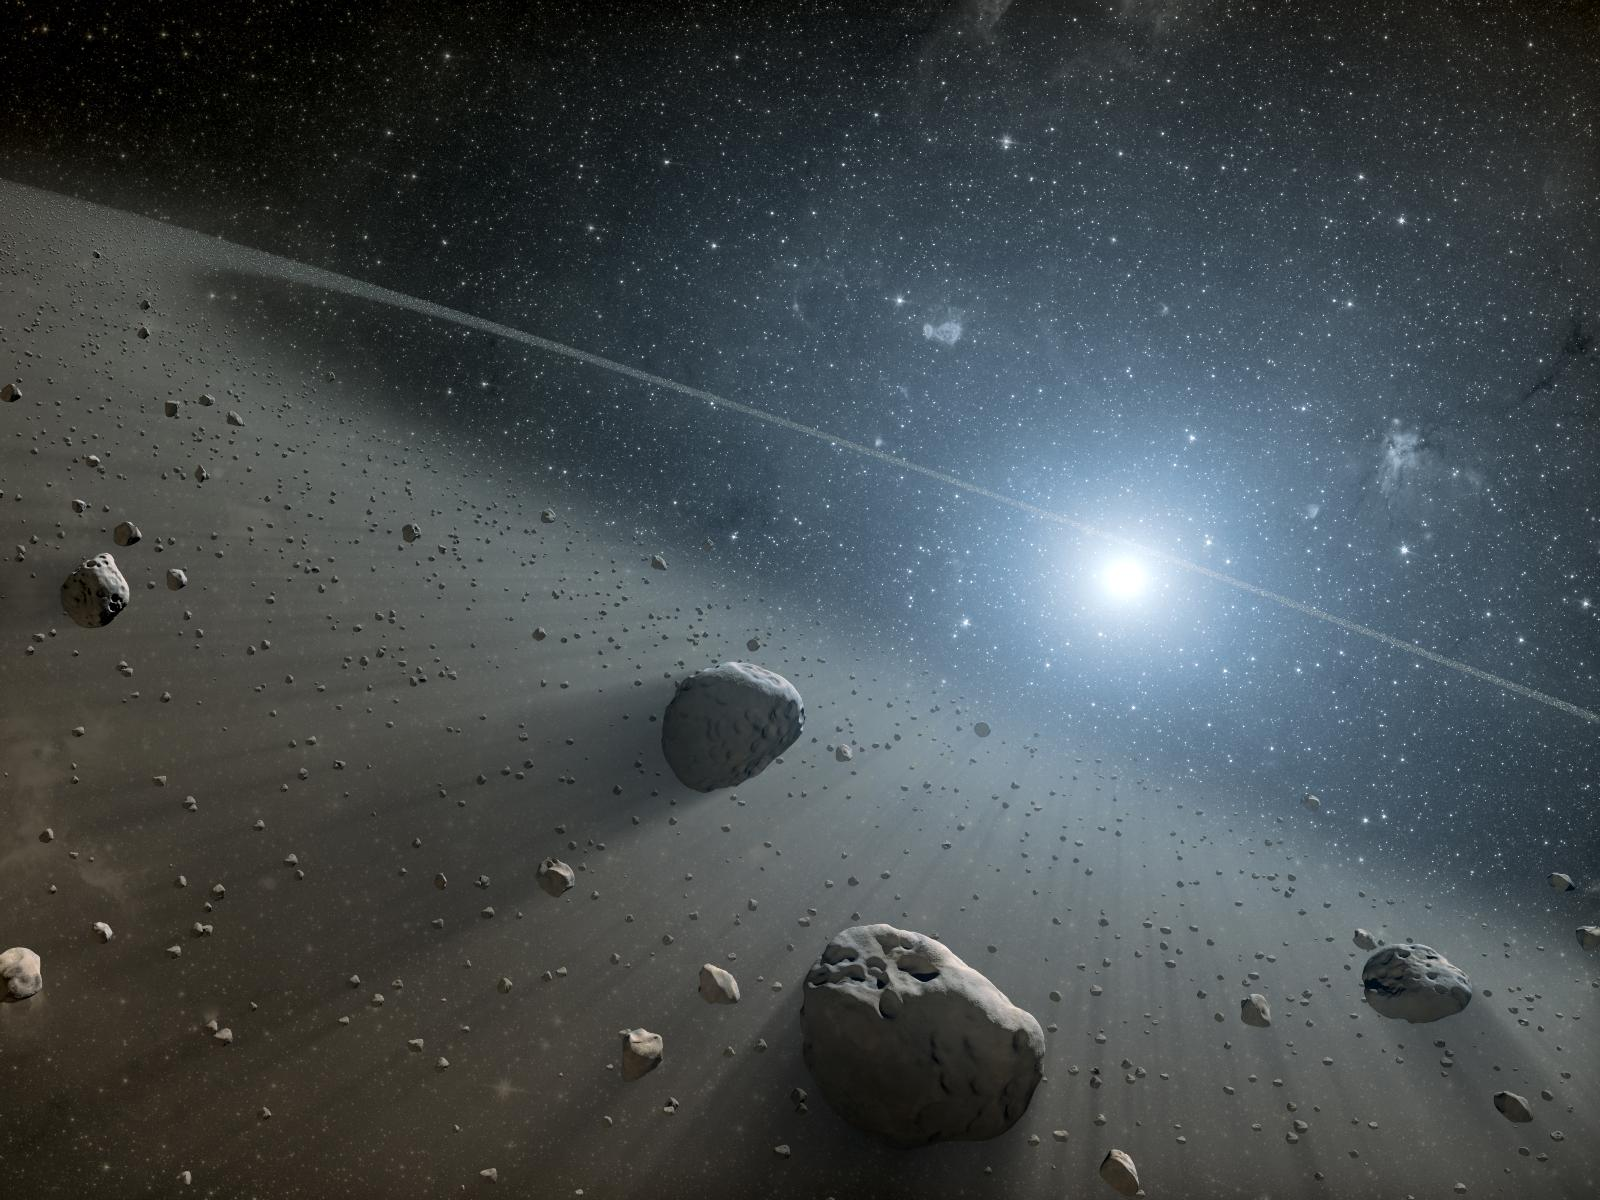 Pyramid-shaped 427-foot asteroid set to whiz past Earth